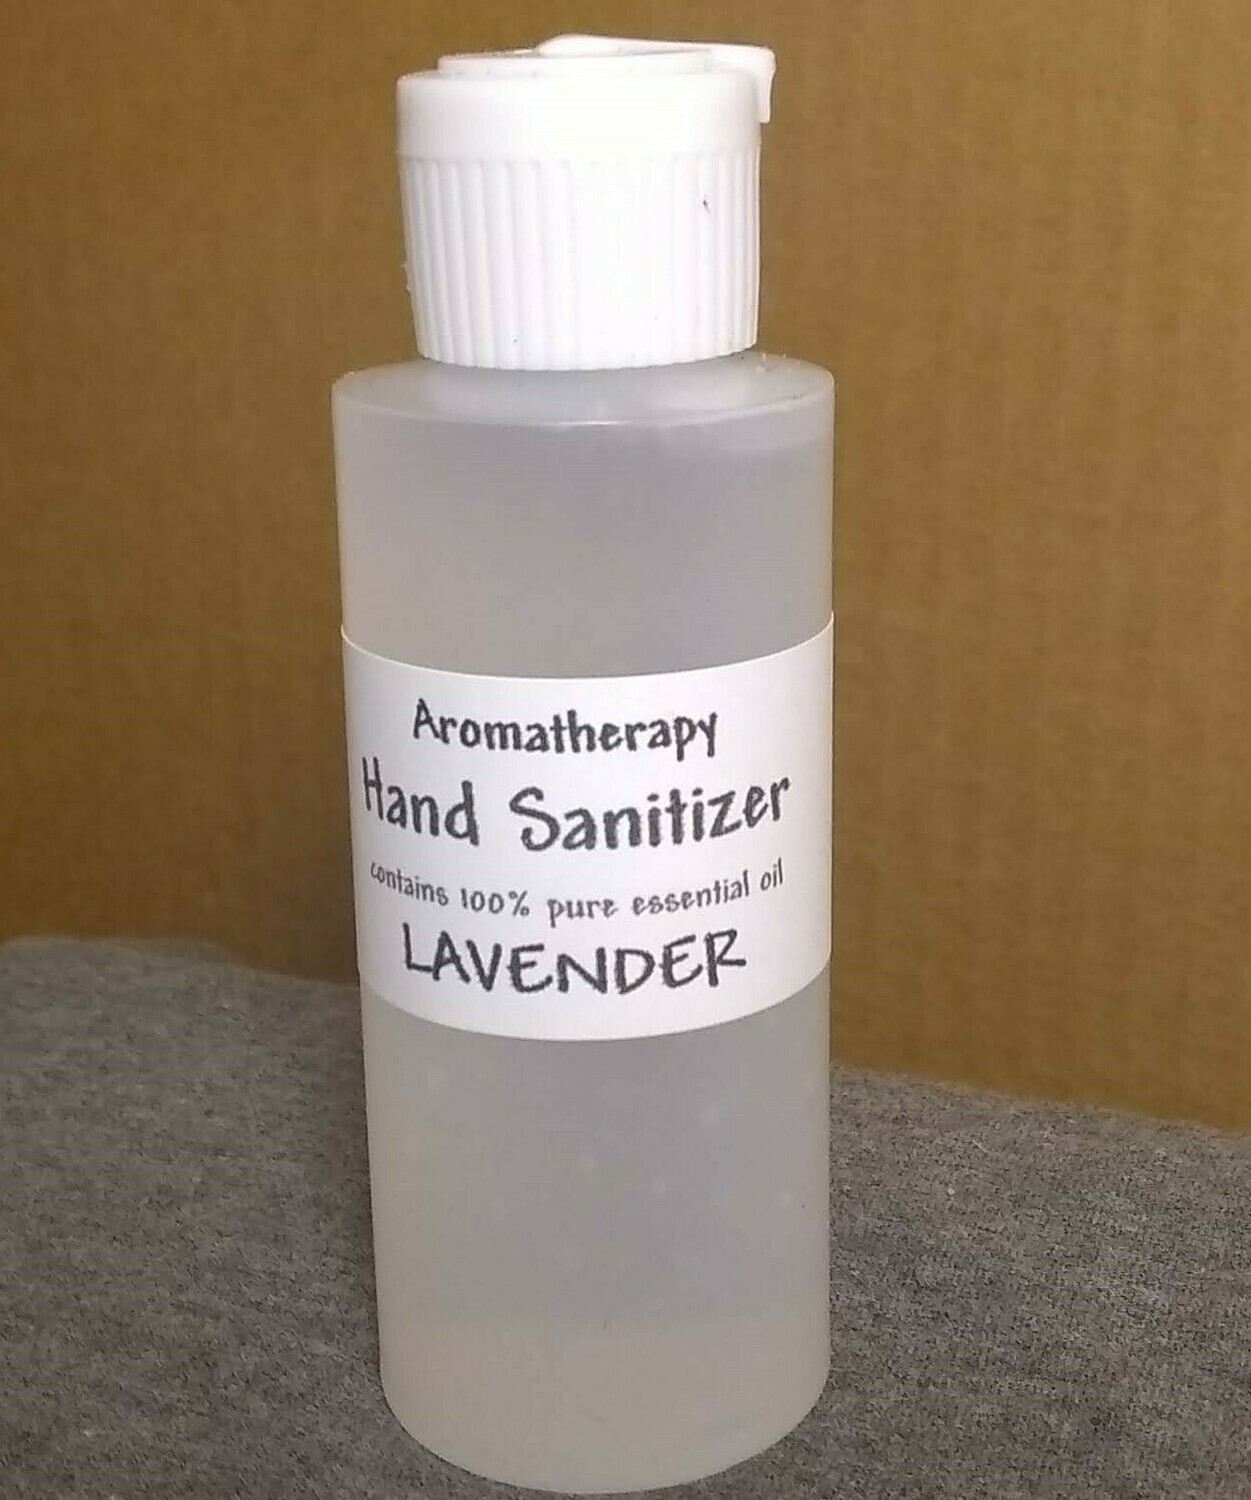 Lavender ​- Aromatherapy Hand Sanitizer - 62% Alcohol - Made with Pure Essential Oils - 2 ounce